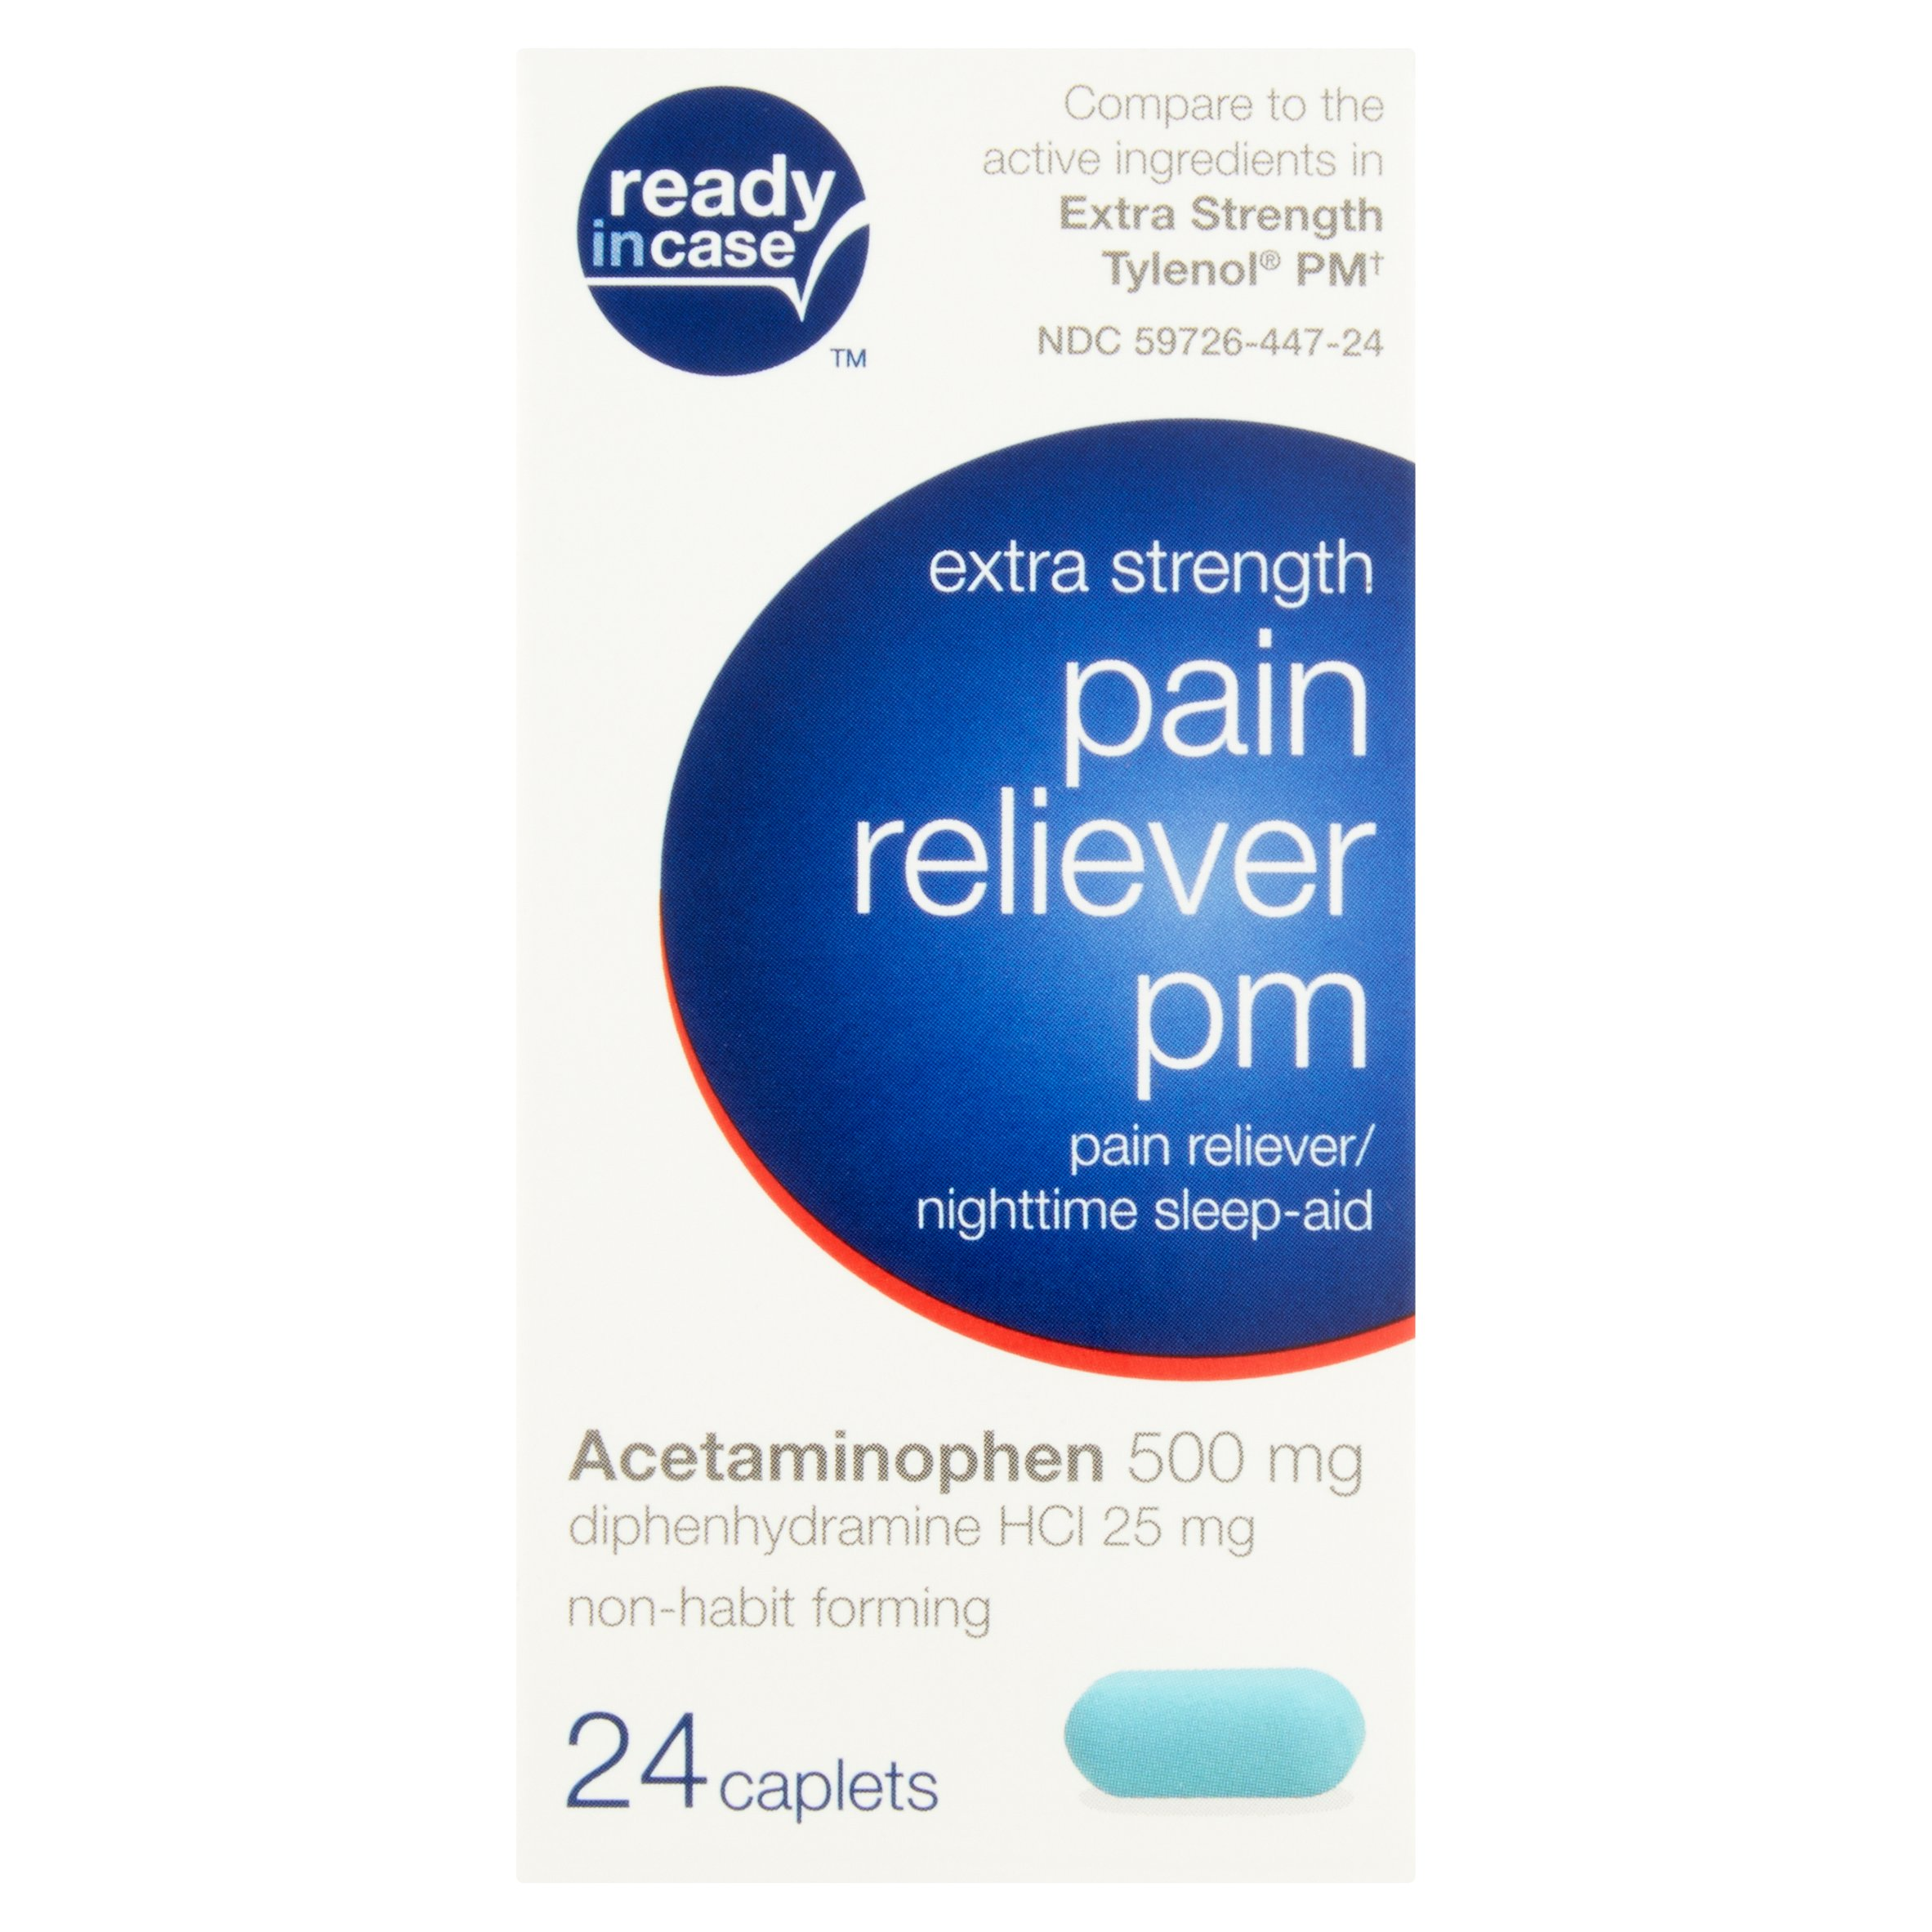 Ready in Case Extra Strength Pain Reliever Pm Caplets, 24 count